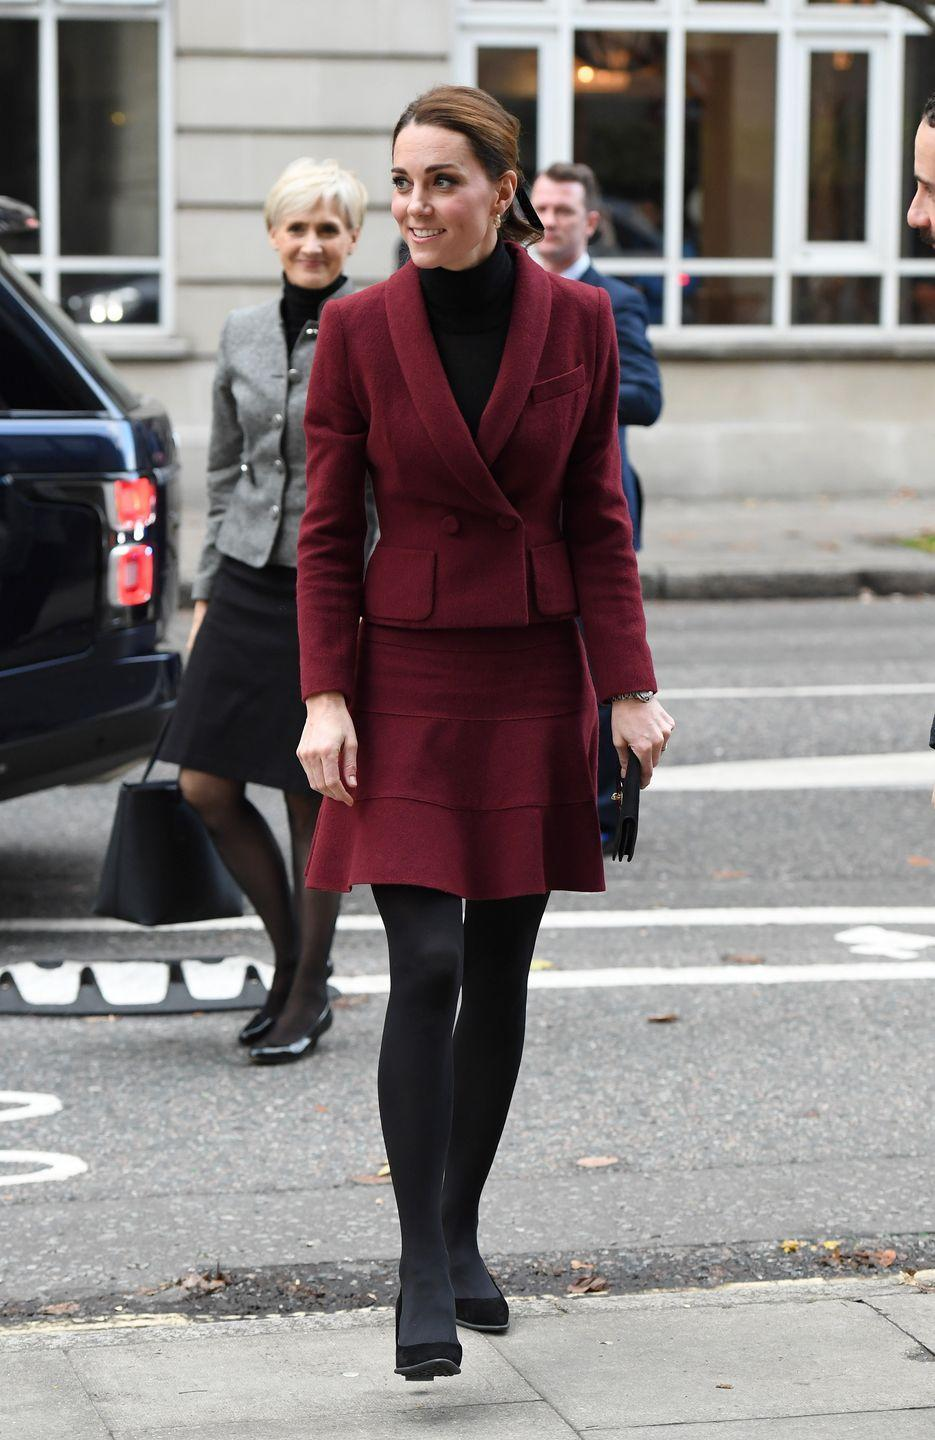 """<p>Kate paid a visit to University College London wearing a skirt and blazer by Paule Ka. She paired it with Tod's suede heels and a turtleneck. The Duchess actually recycled this ensemble: she <a href=""""https://twitter.com/WhatKateWore/status/1065250724542586881"""" rel=""""nofollow noopener"""" target=""""_blank"""" data-ylk=""""slk:has sported the Paule Ka skirted suit on at least two previous occasions"""" class=""""link rapid-noclick-resp"""">has sported the Paule Ka skirted suit on at least two previous occasions</a>.</p>"""